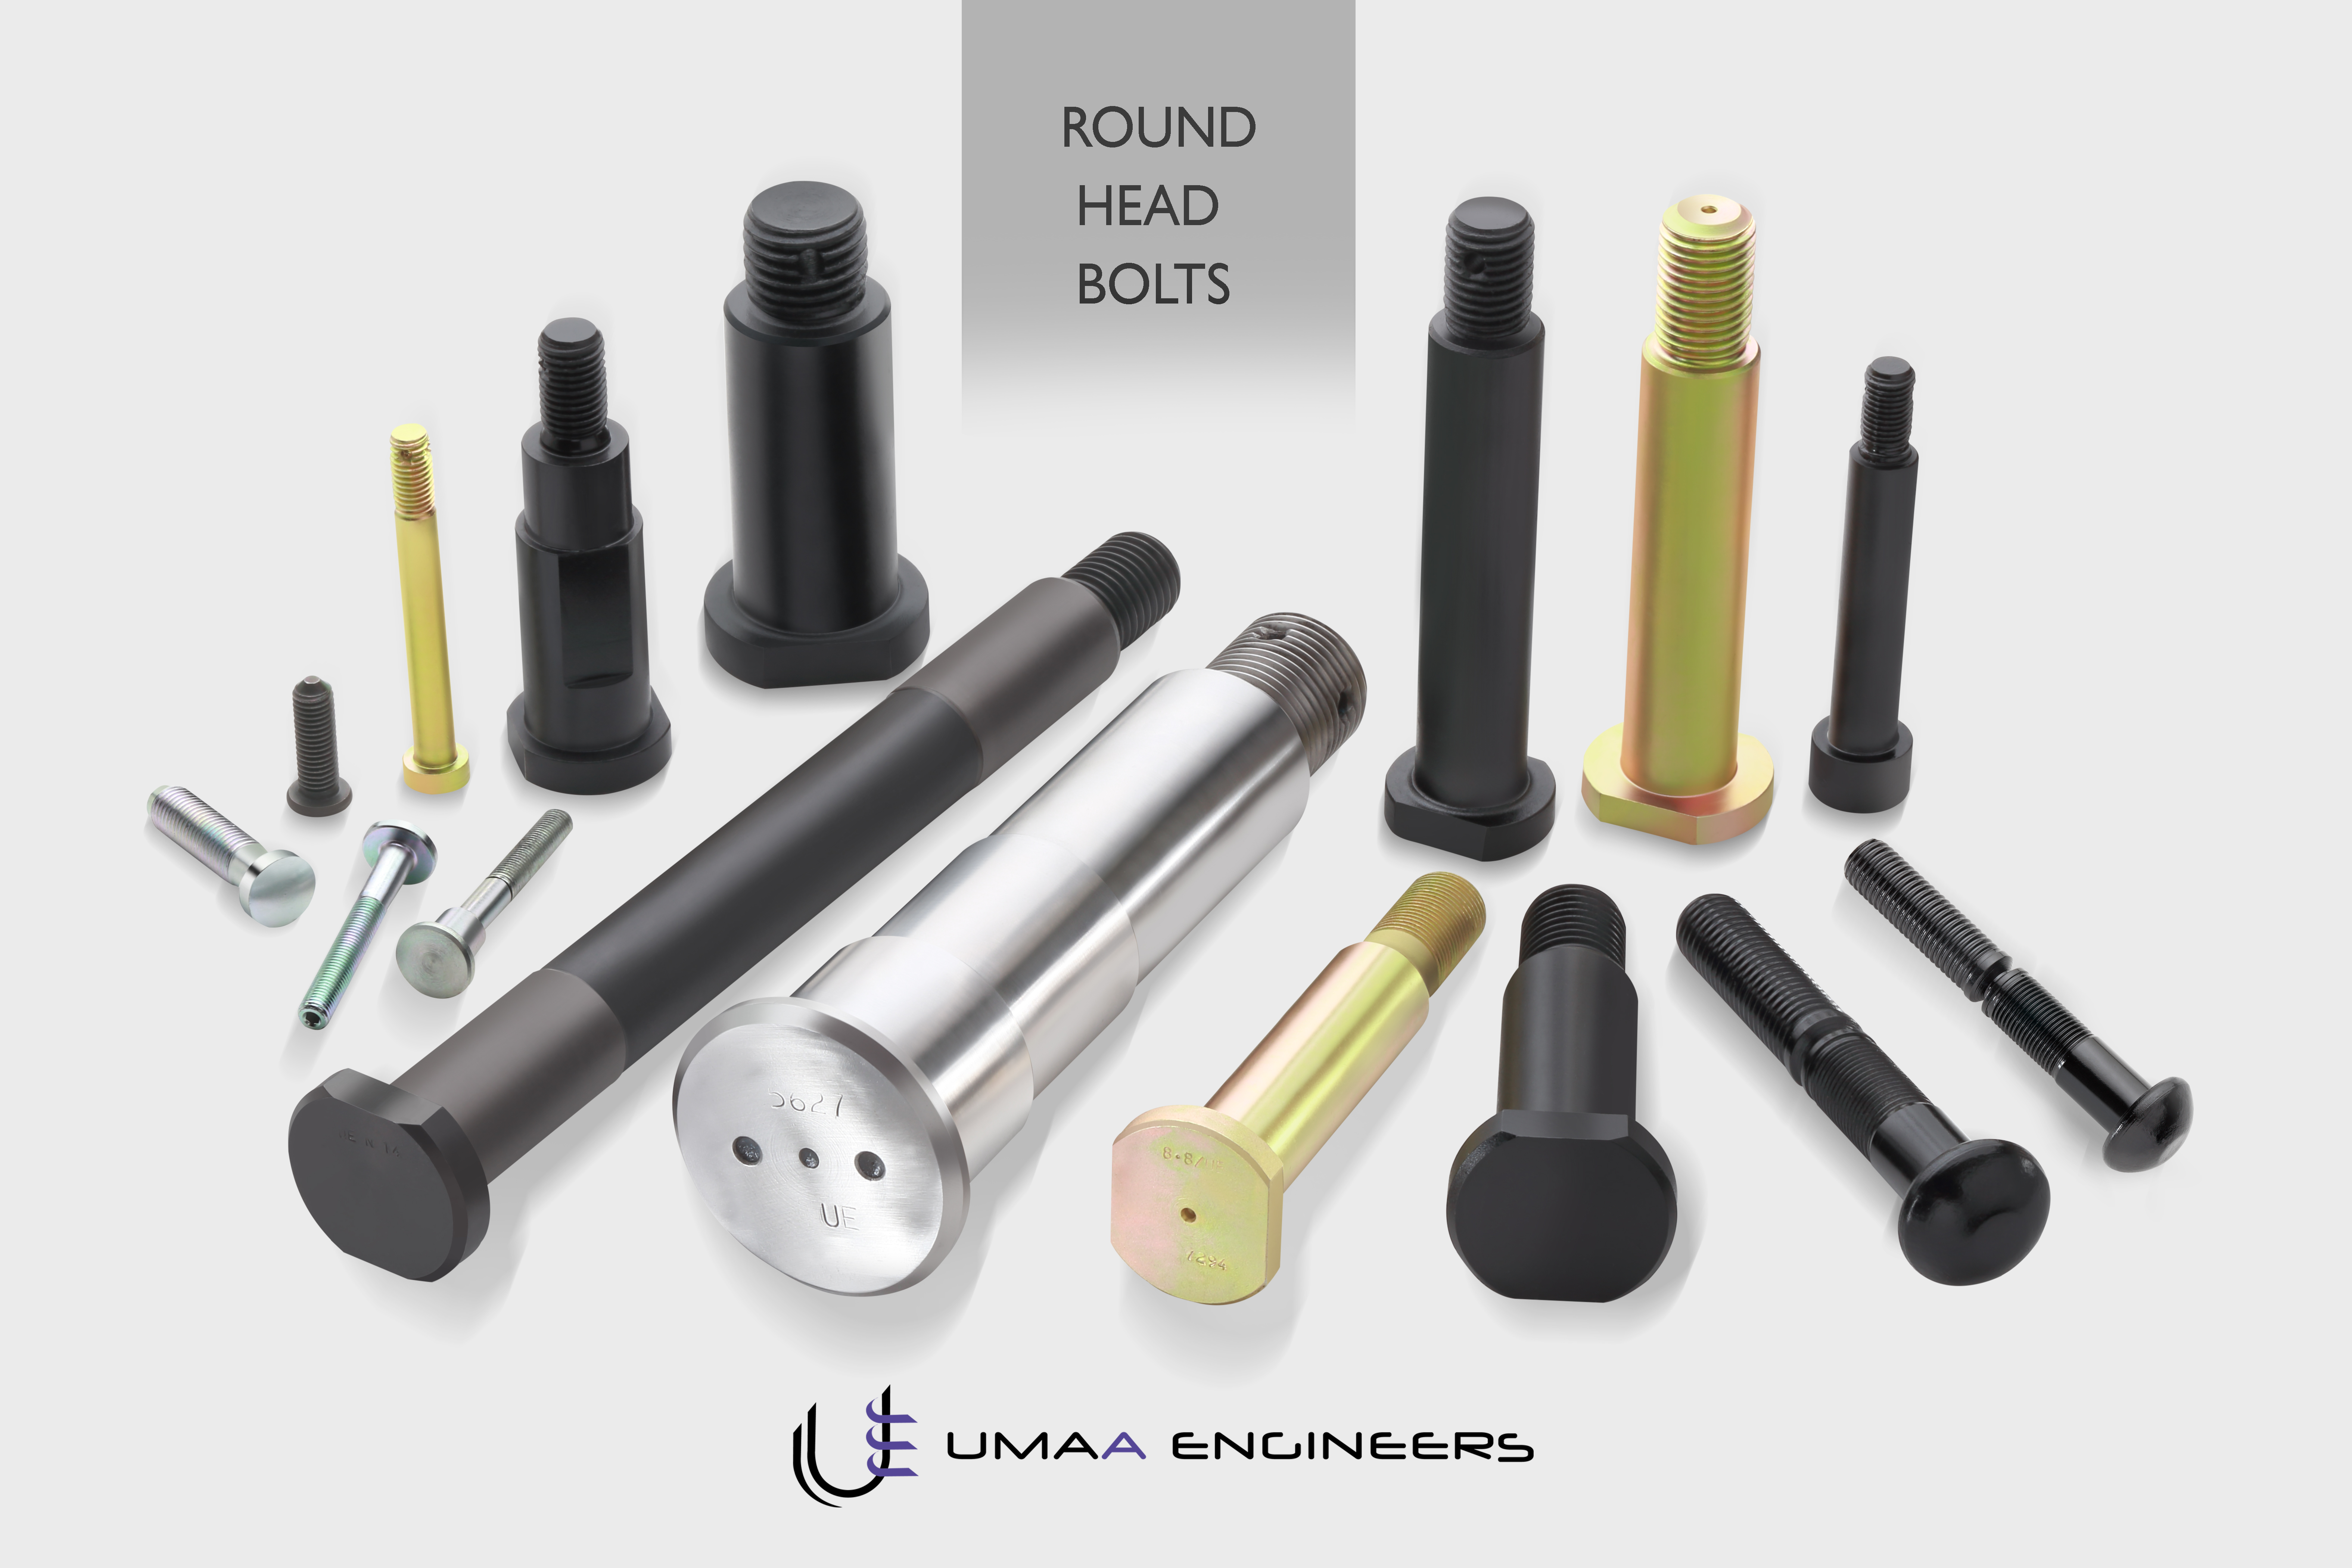 Round Head Bolts Manufacturers in Chennai We are a leading Manufacturer of Round Head Bolts